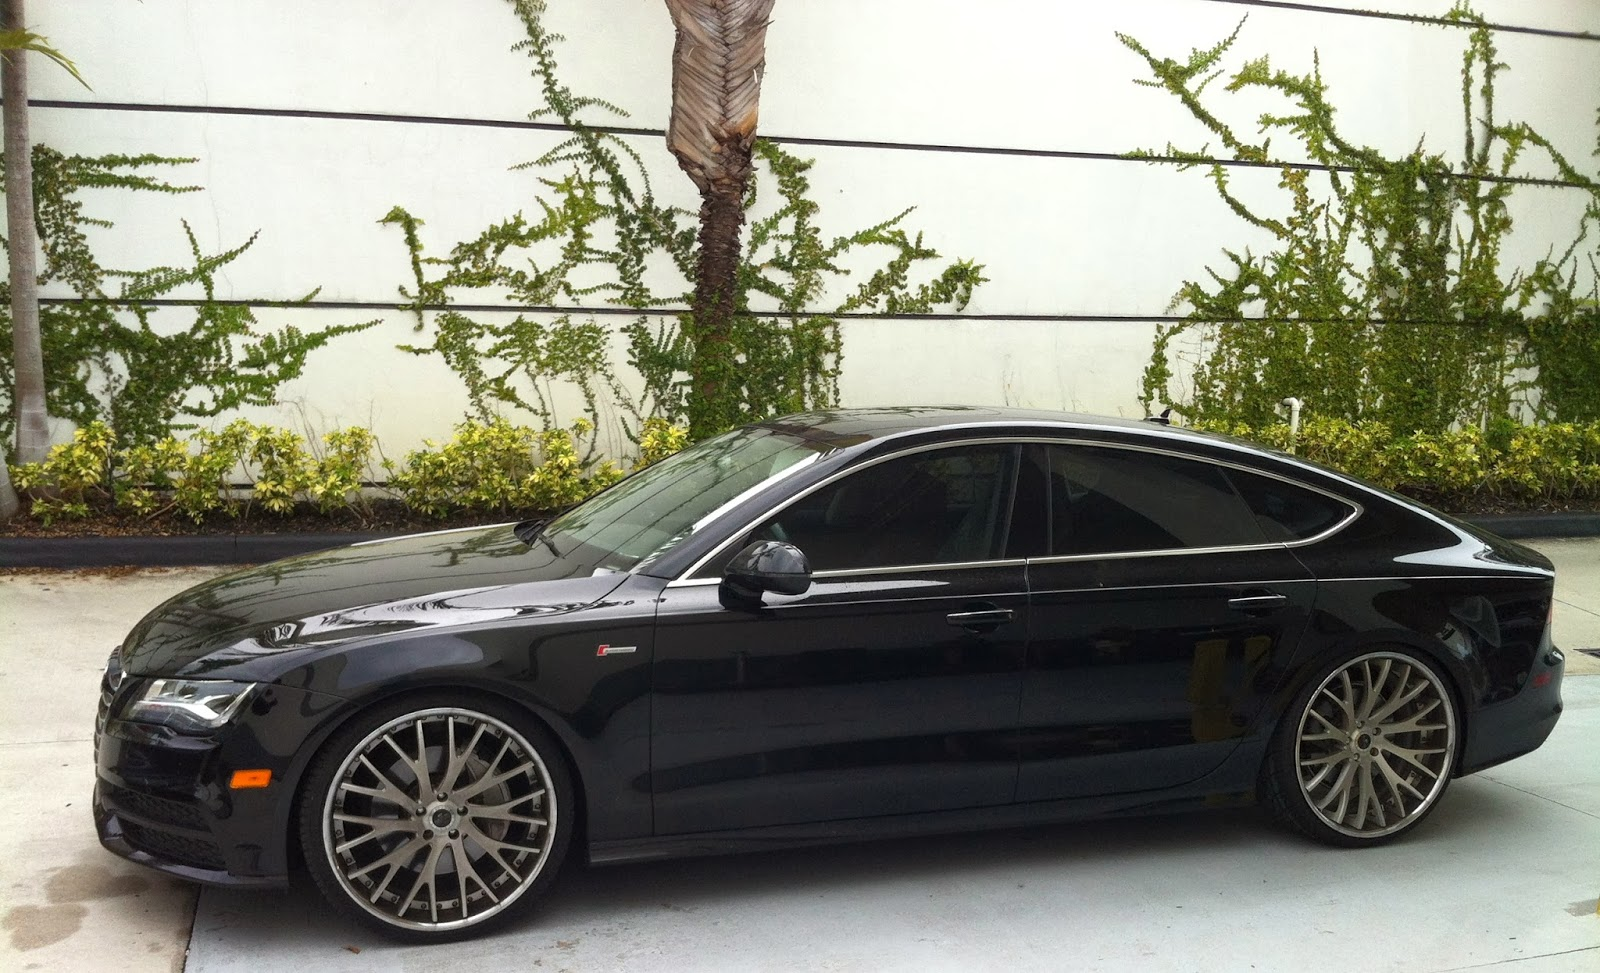 audi a7 blacked out. audi a7 blacked out 2016